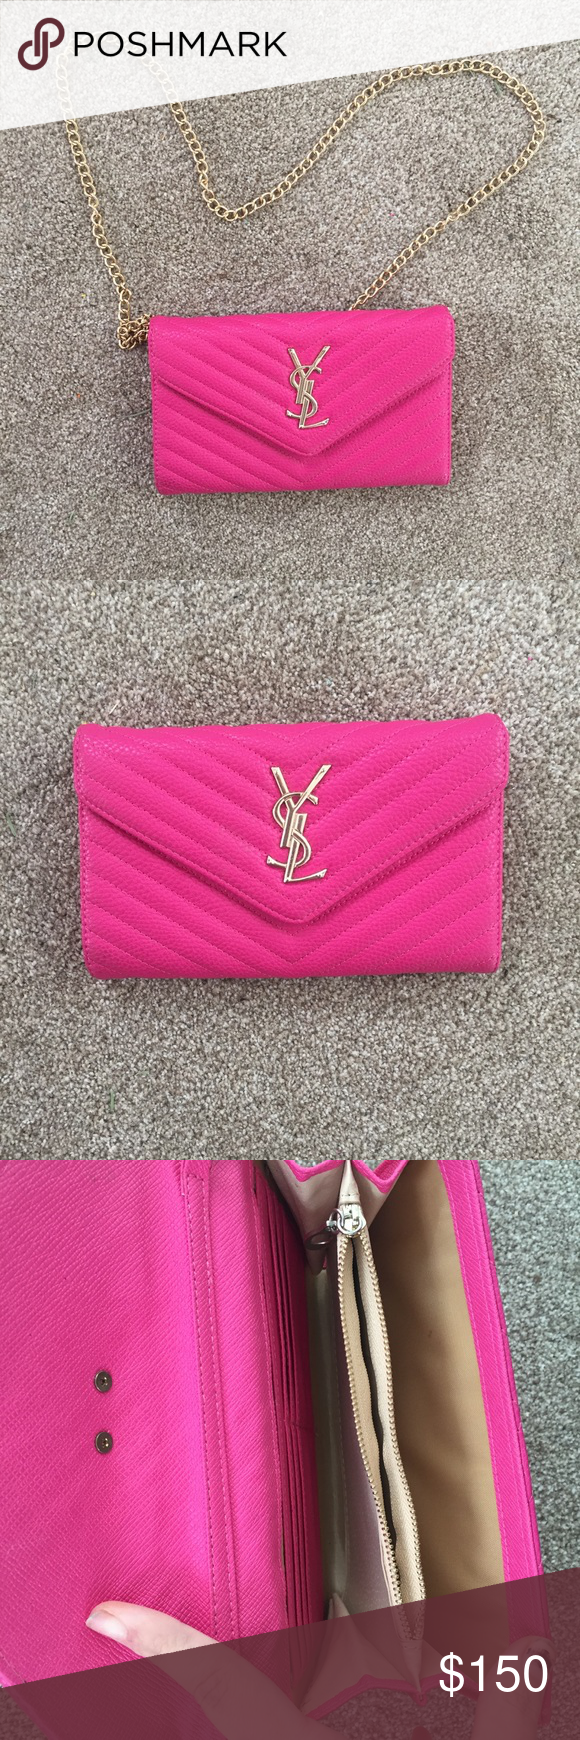 584c6bf8825b7 Hot pink YSL bag. Unsure of auth so priced accordingly. Super cute. Only  used twice! Yves Saint Laurent Bags Crossbody Bags